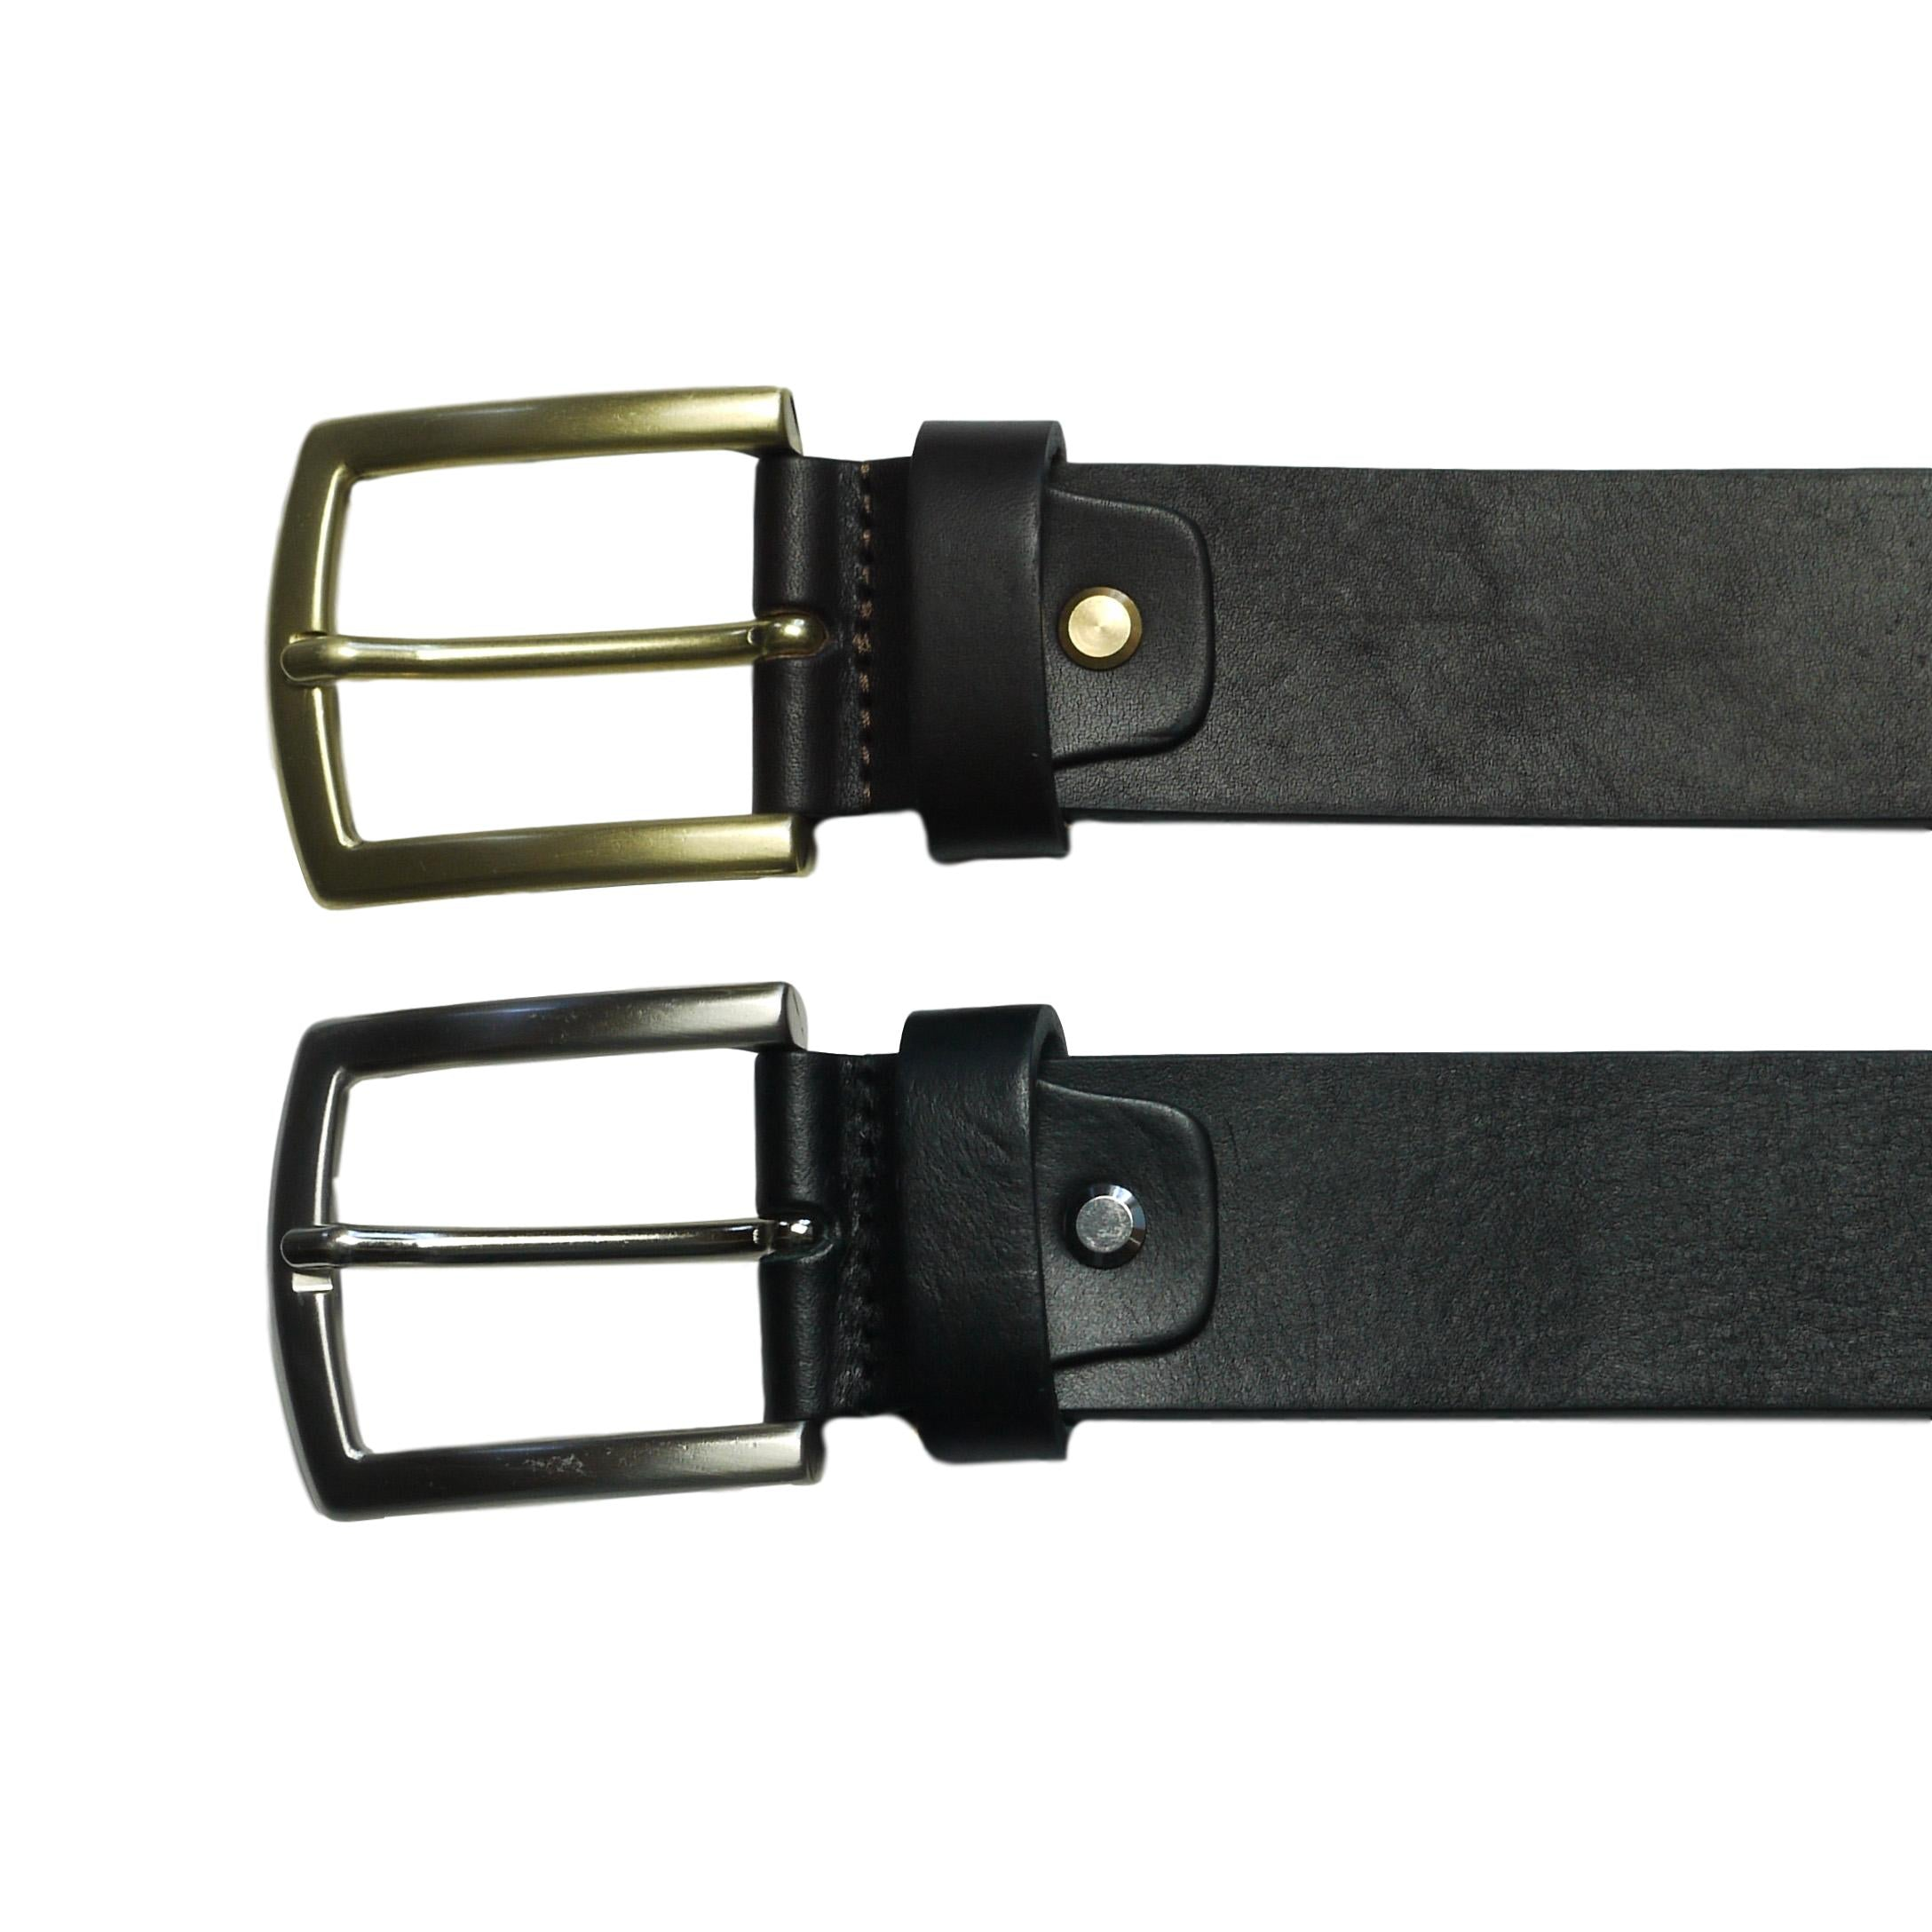 Brown and Black thick leather belts